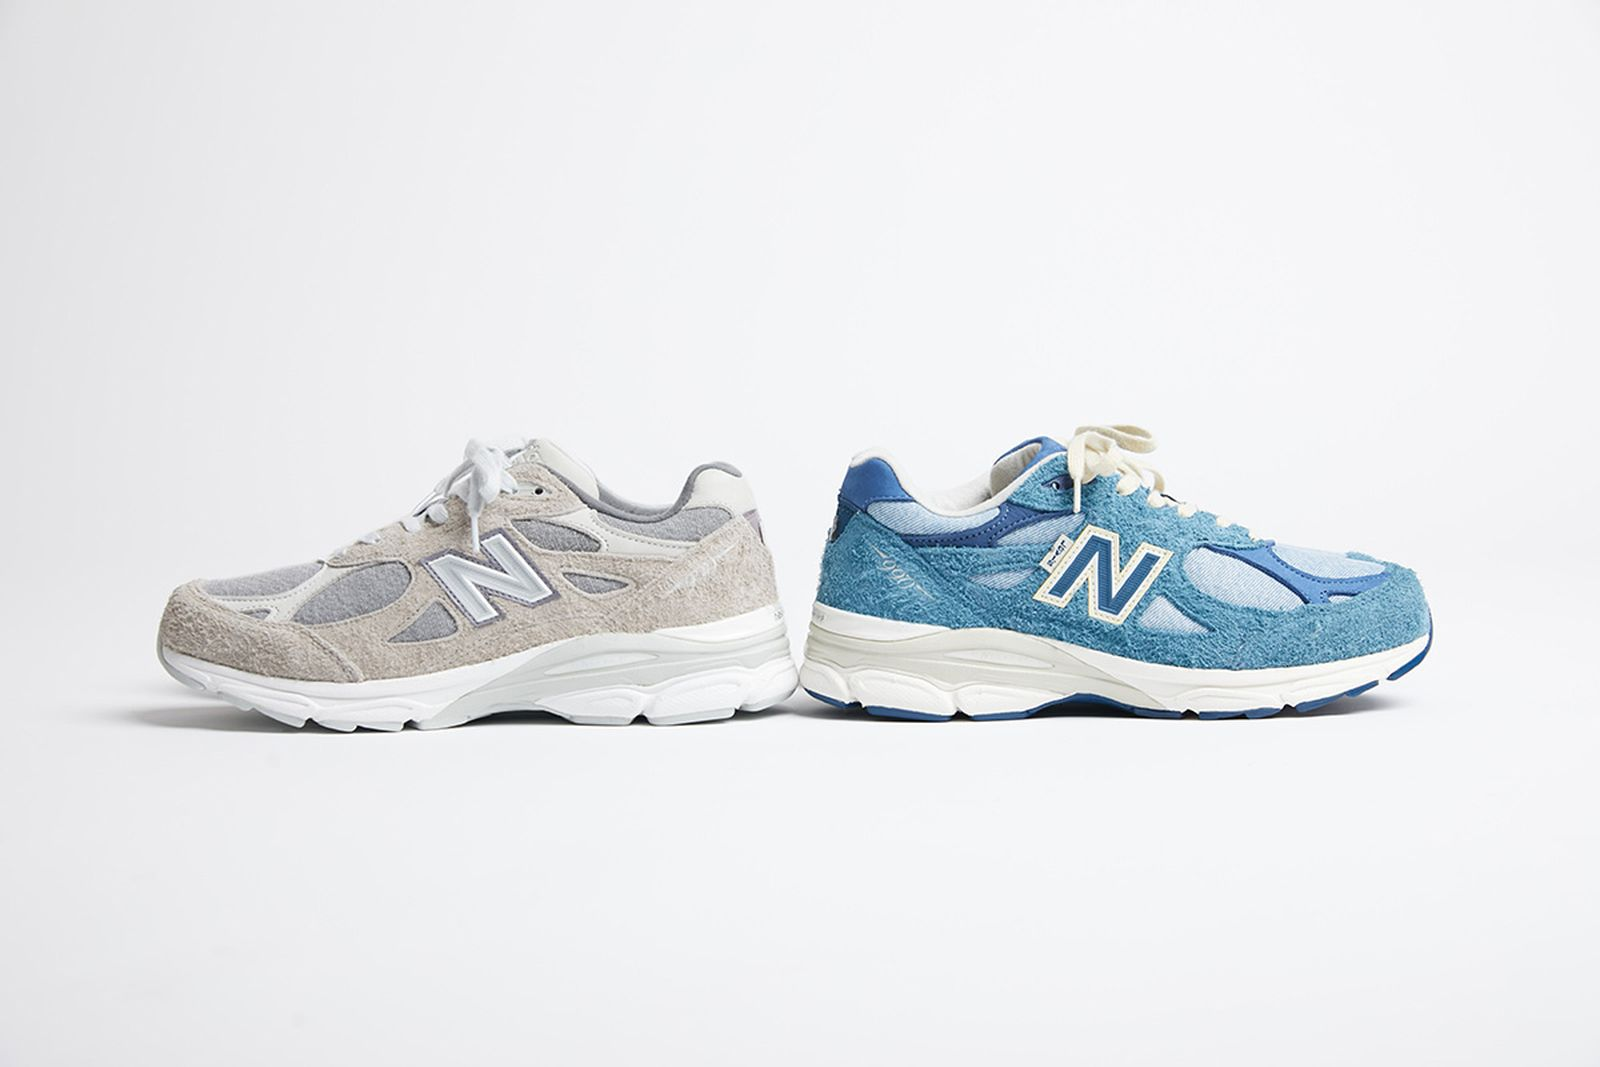 levis-new-balance-990v3-release-date-price-05